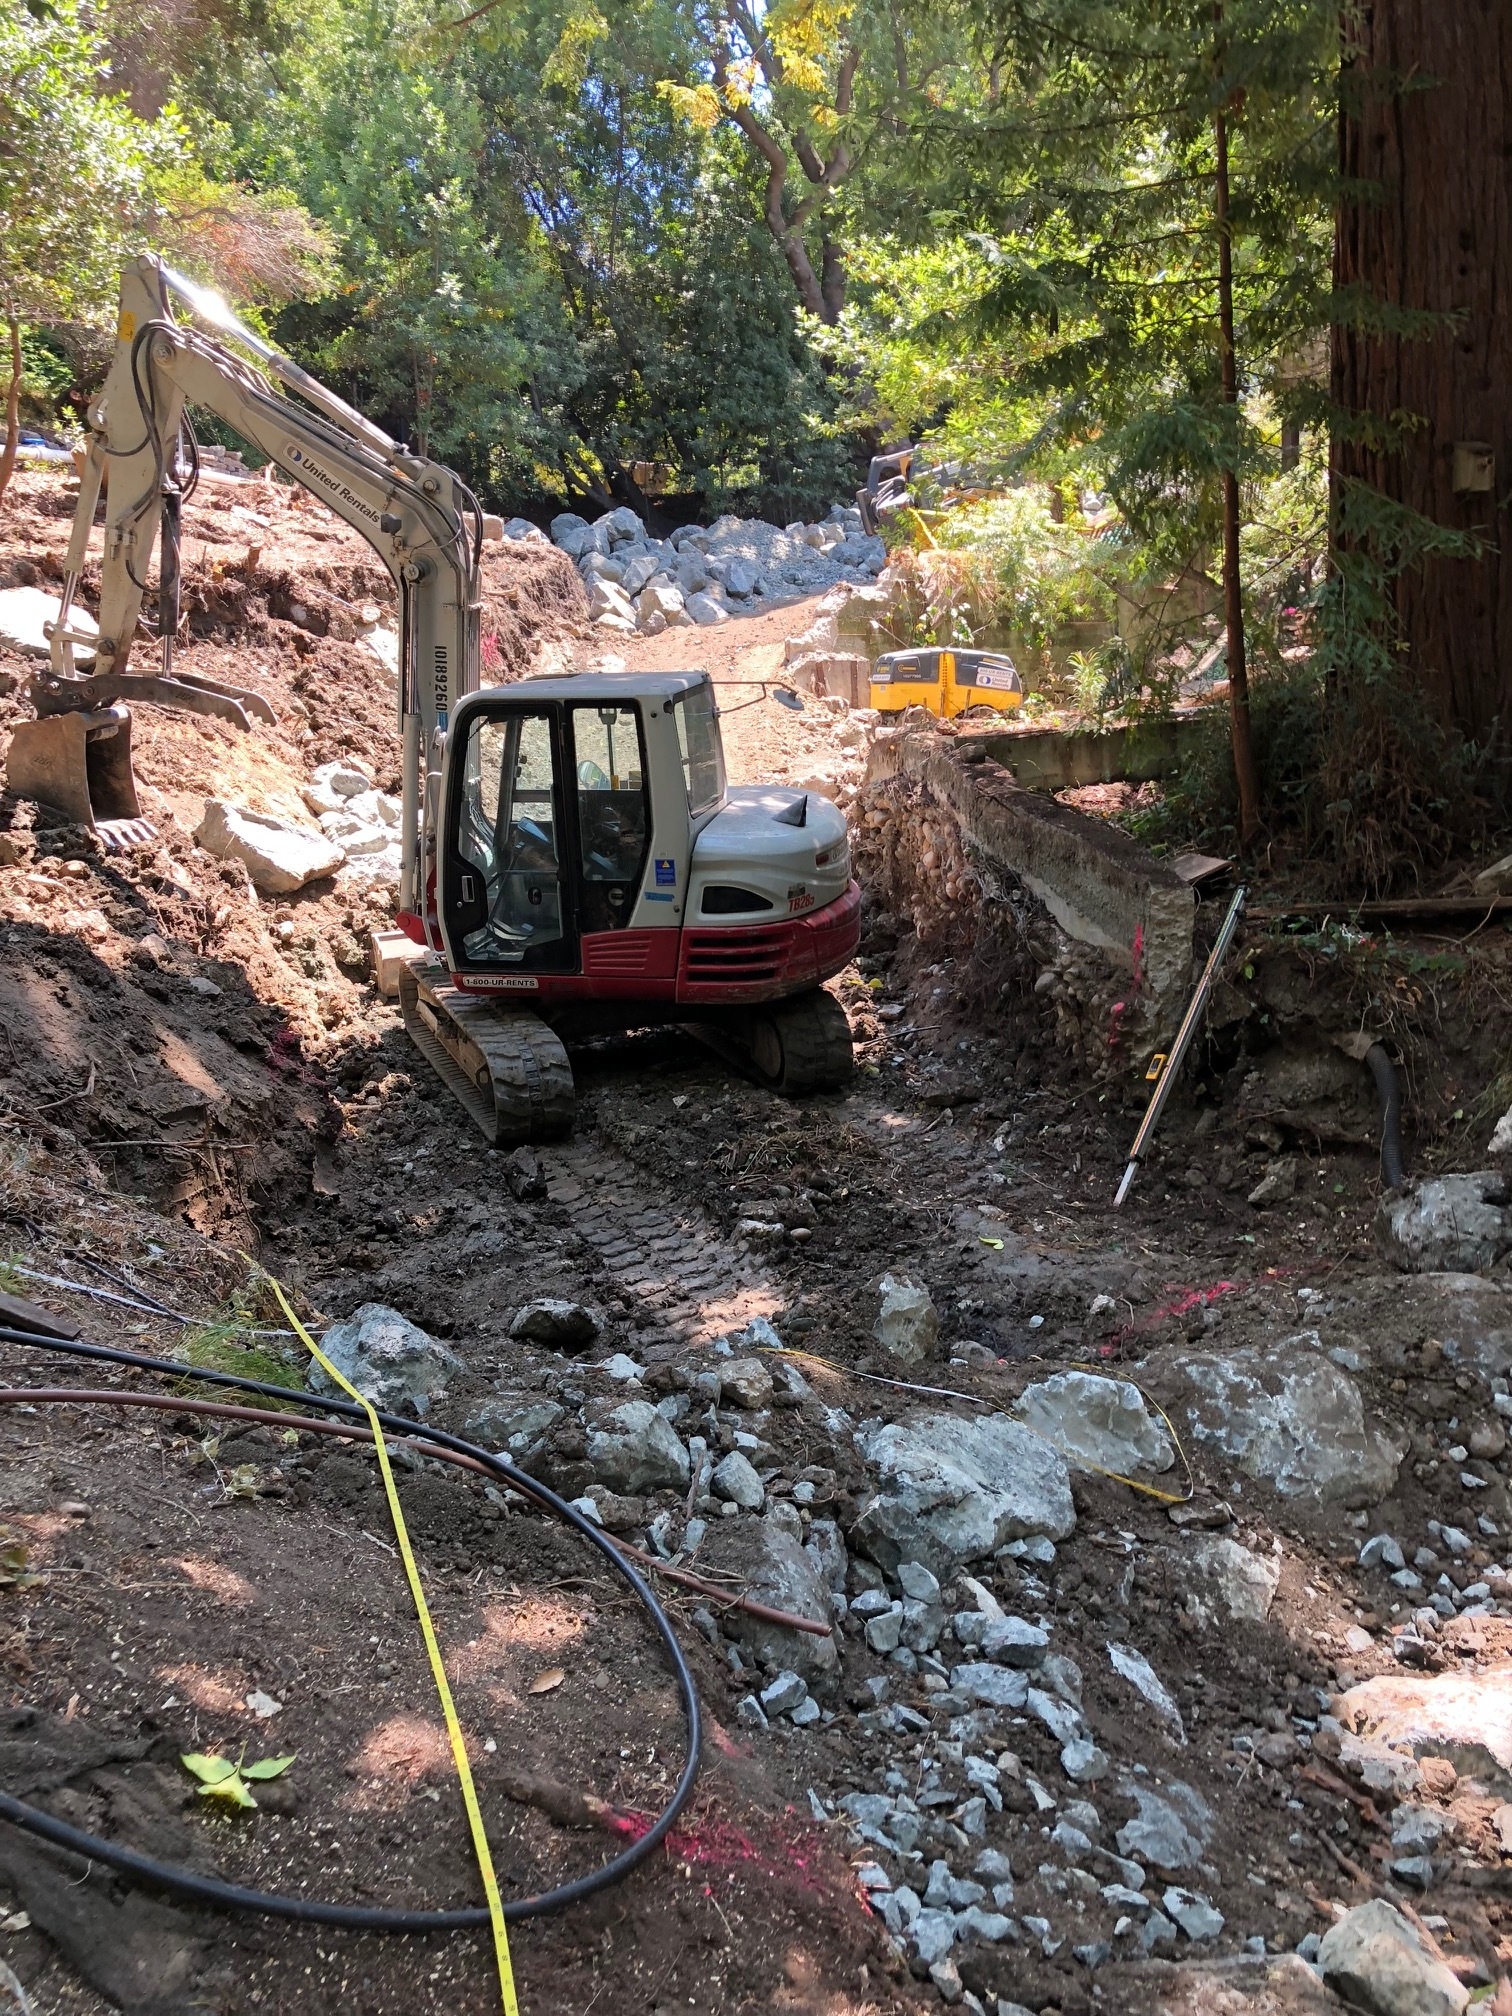 CRR Excavator in Creek-no ppl.jpg